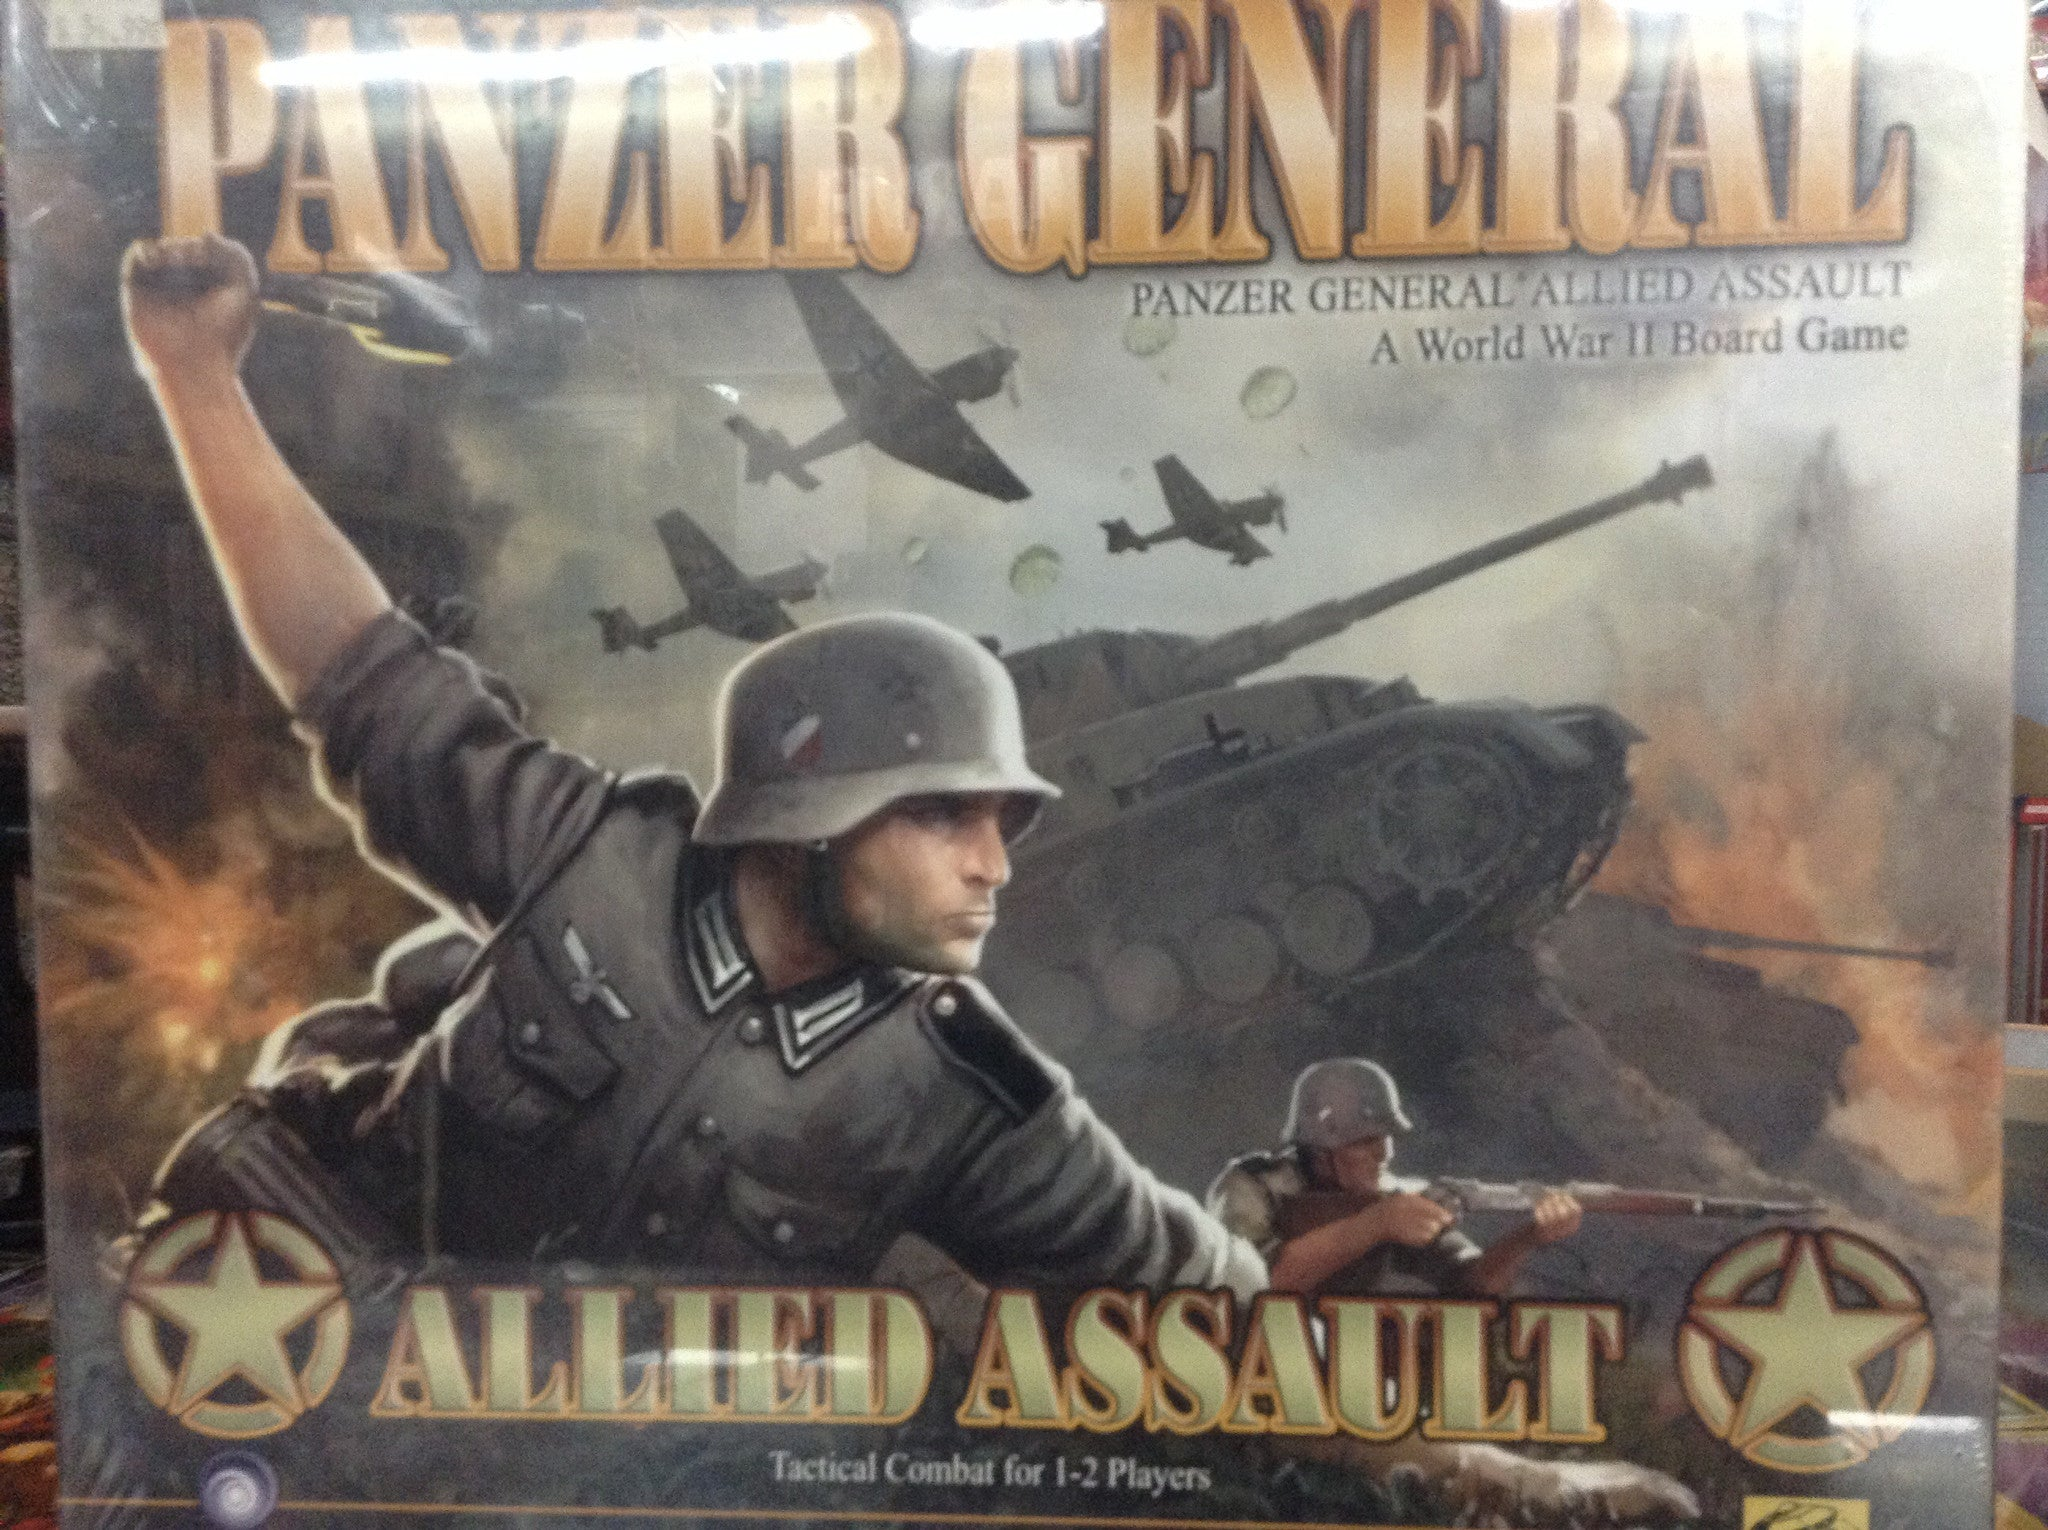 Panzer general allied assault-Board Game-Multizone: Comics And Games | Multizone: Comics And Games